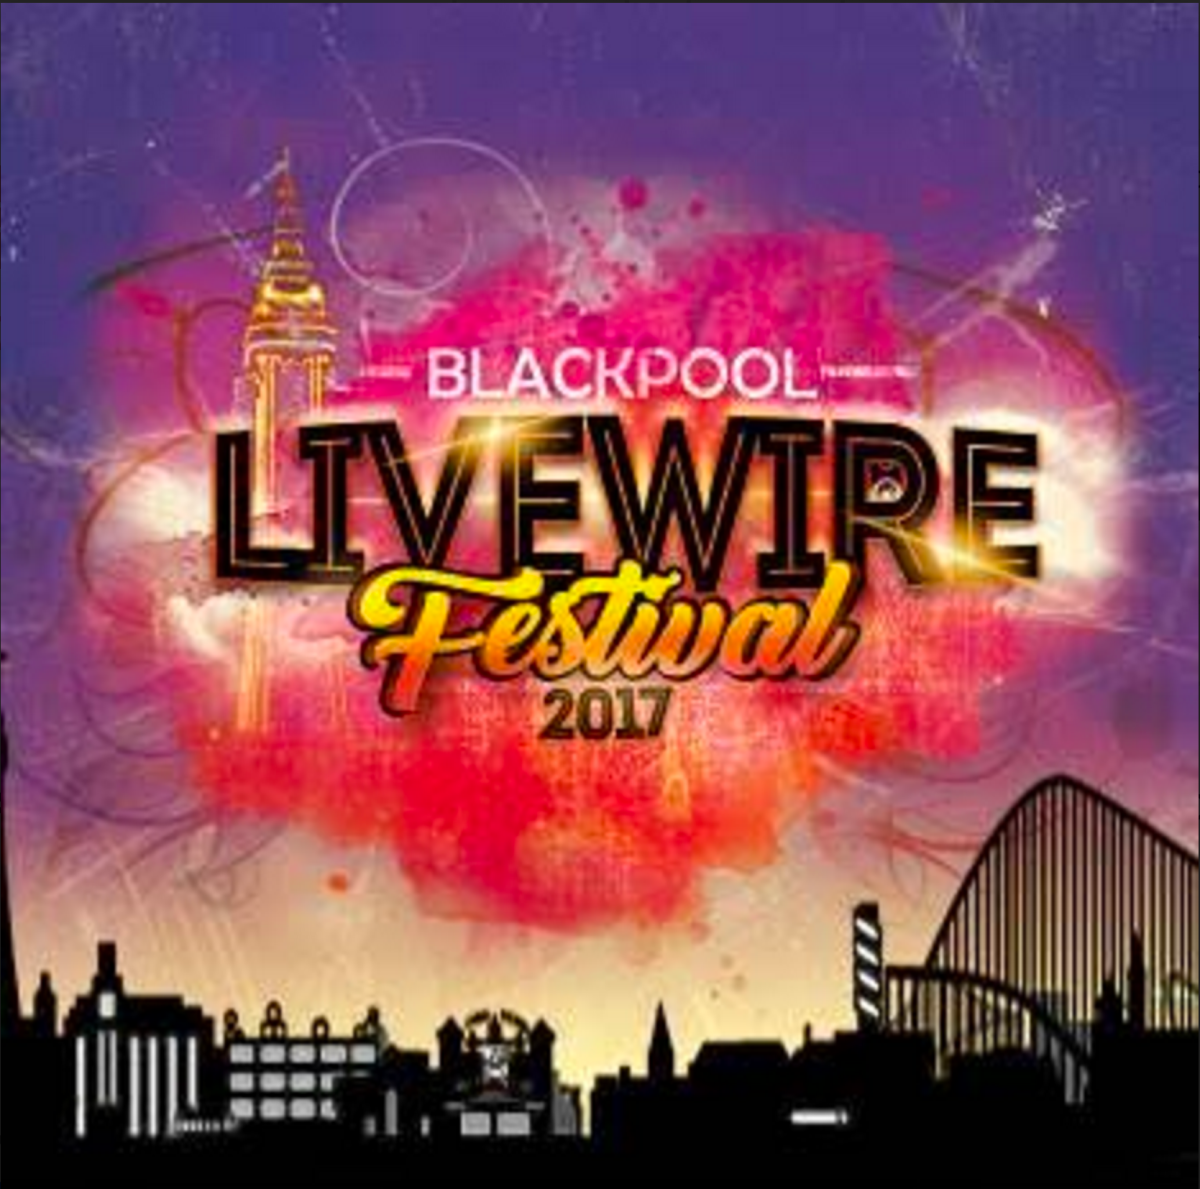 LIVEWIRE Festival 2017 Announces Line-Up Additions